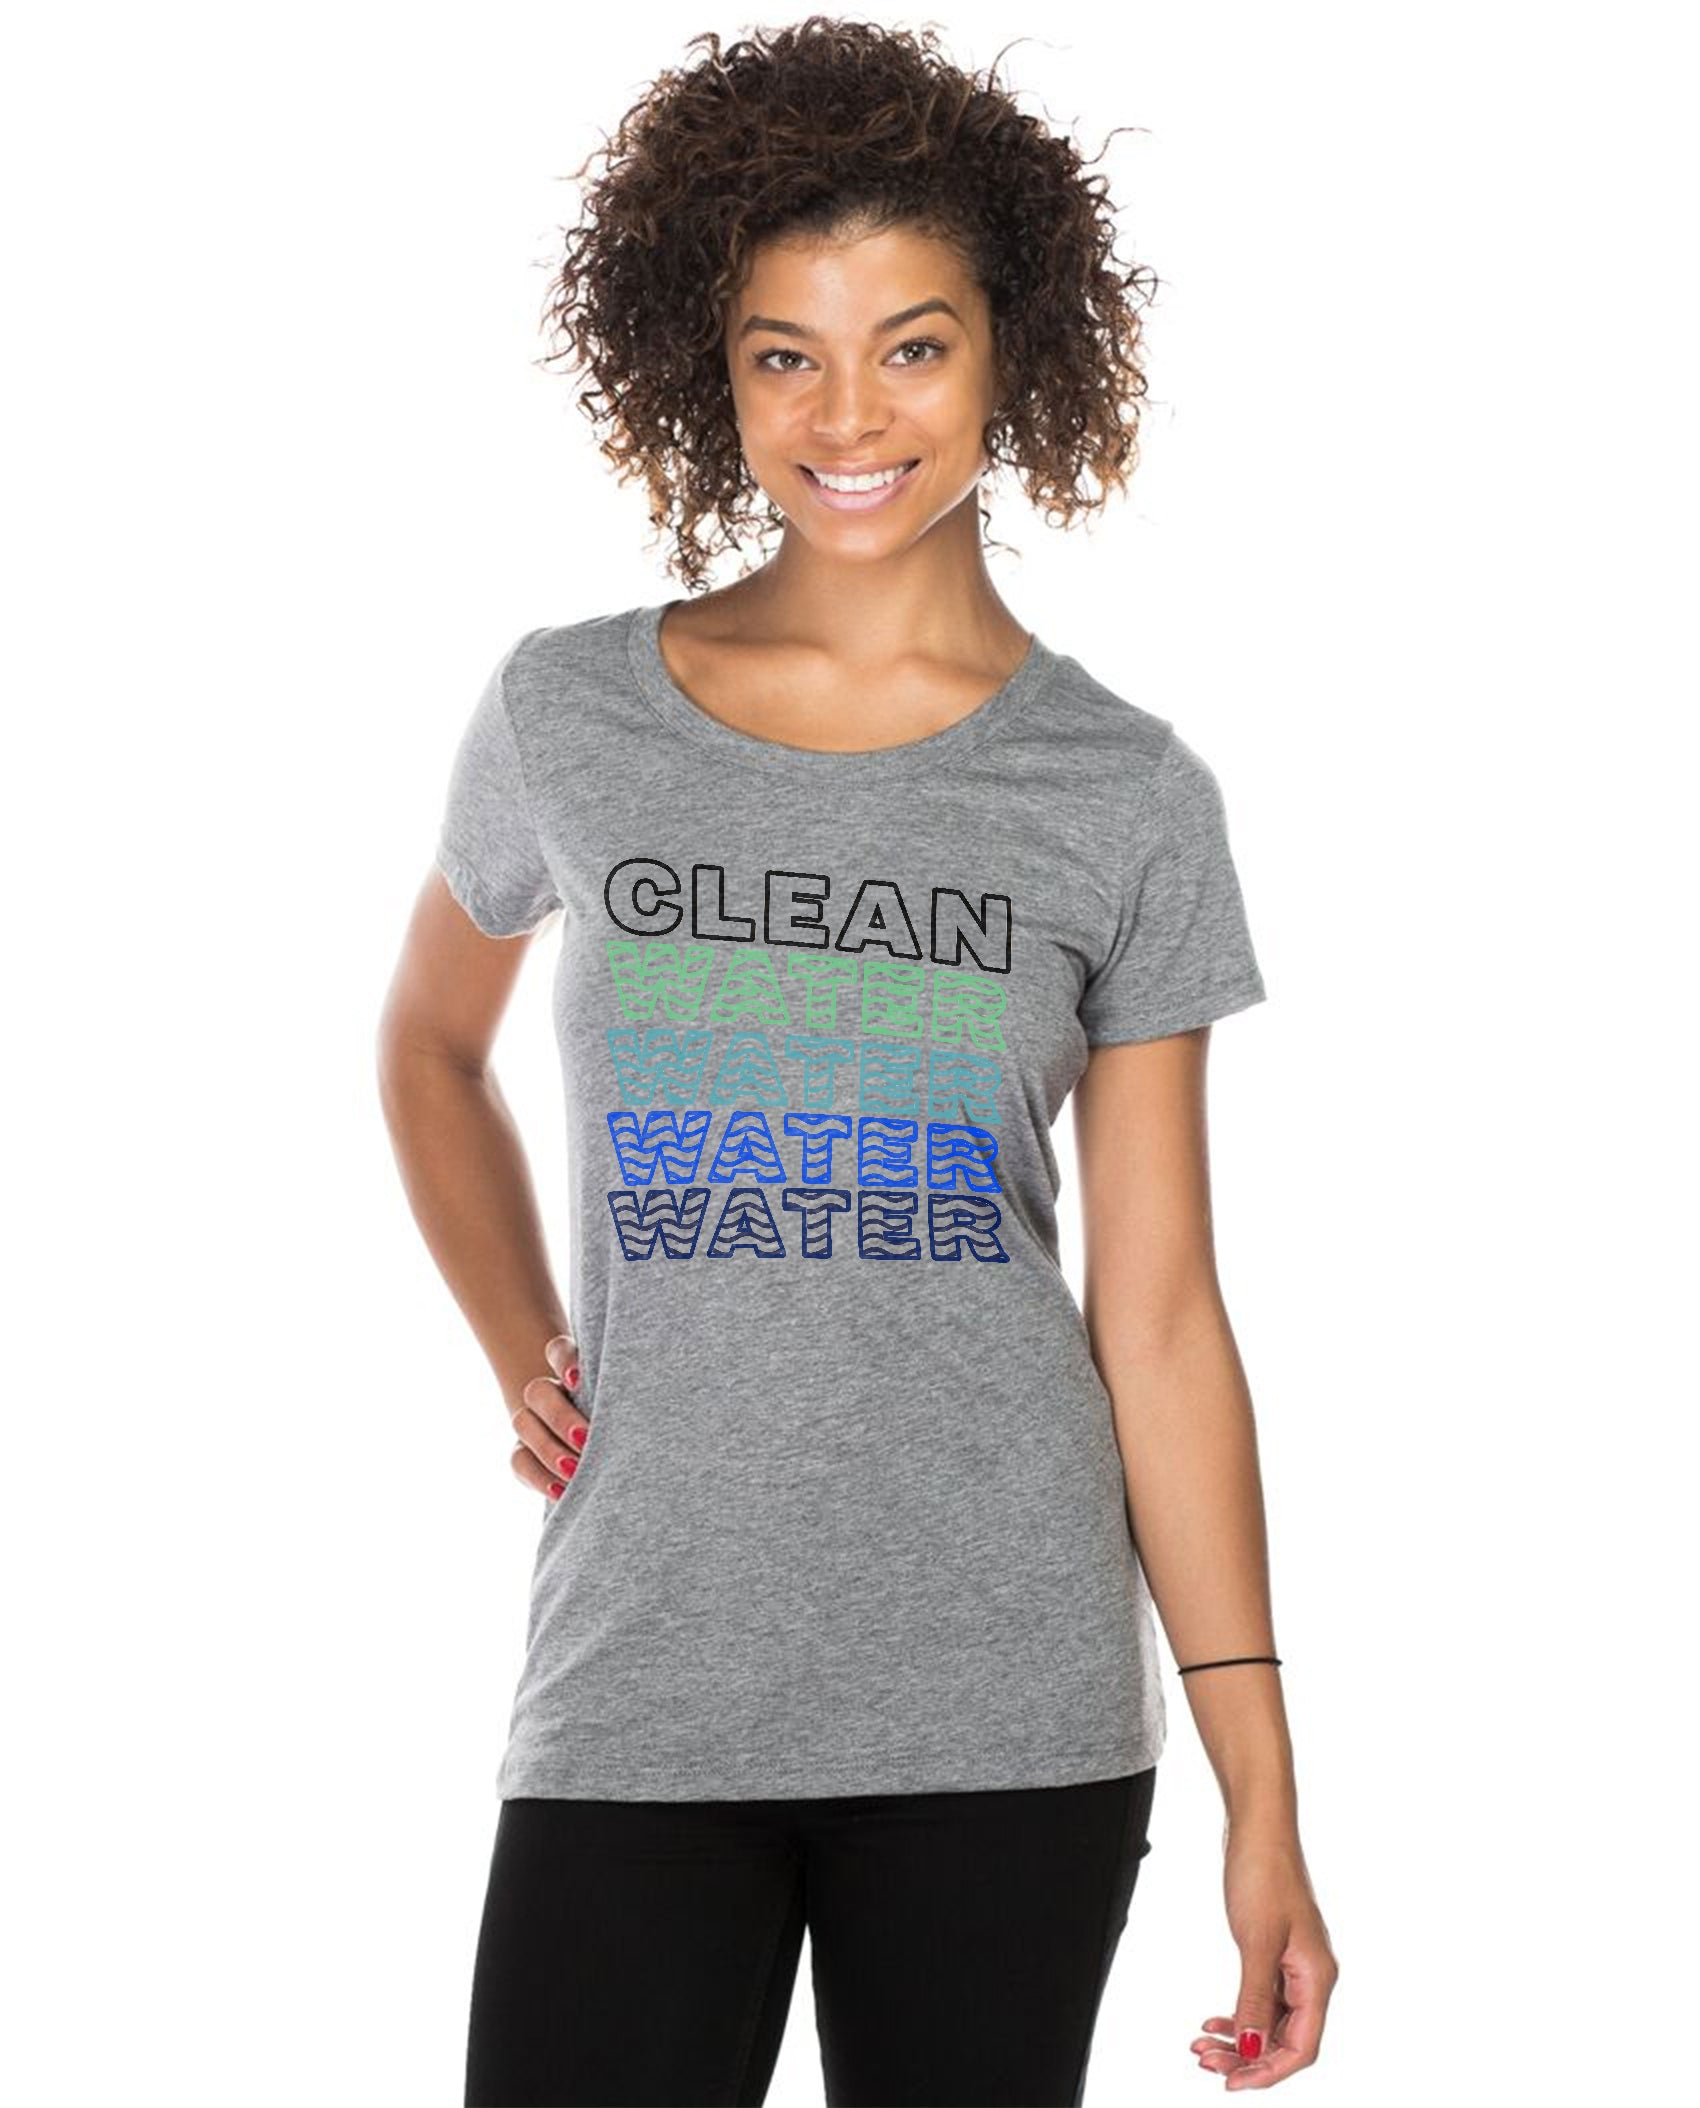 Clean Water Water Water Women's Triblend Slim Fit Short Sleeve Tee